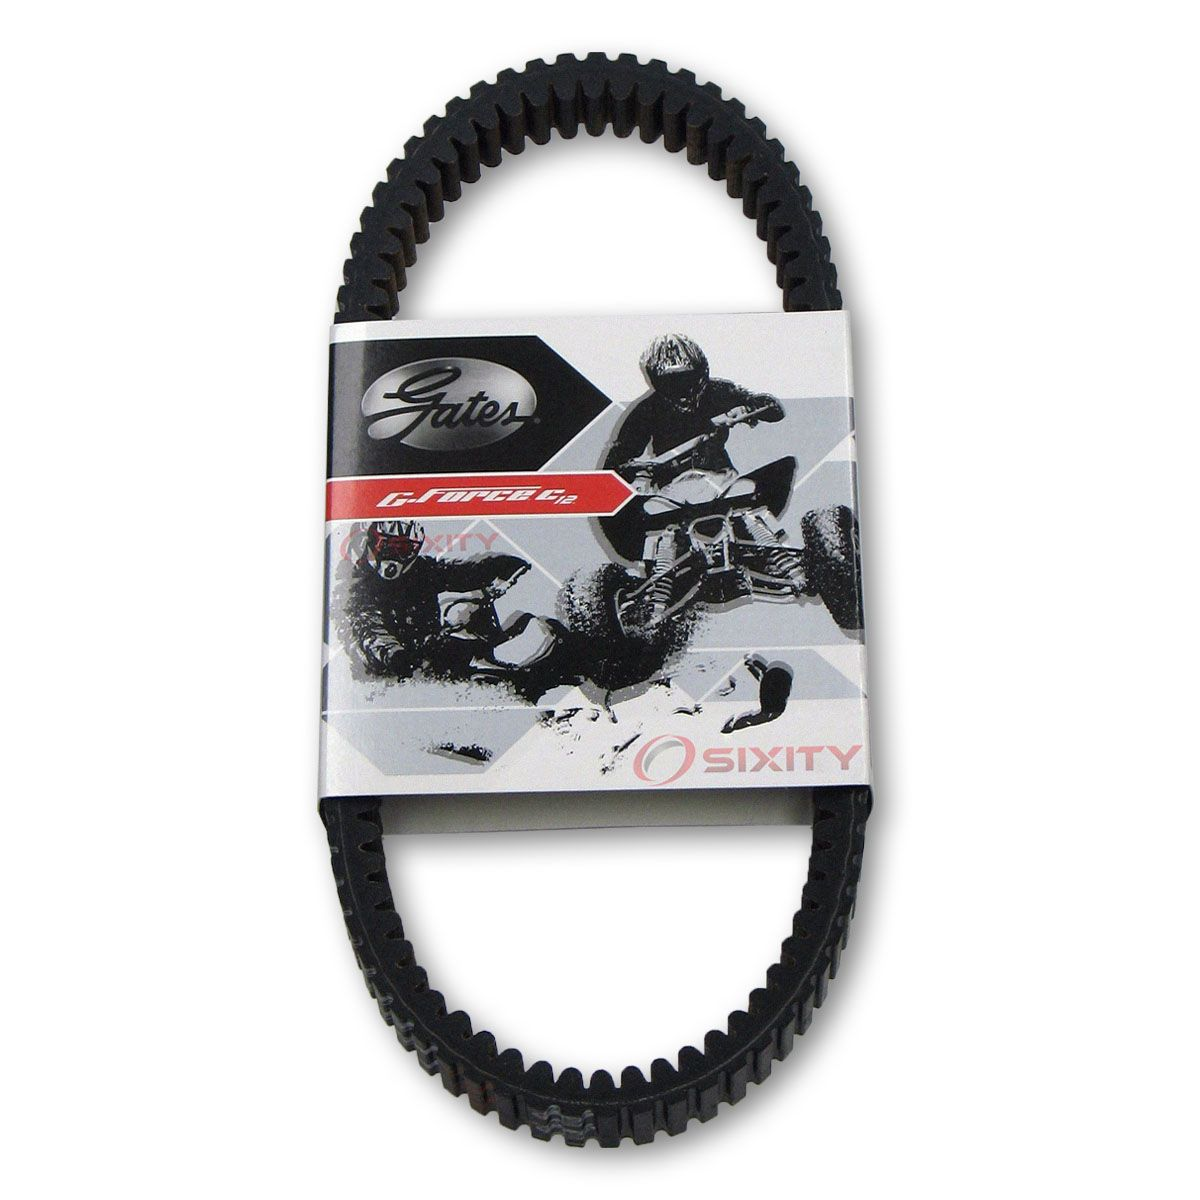 GZD Supplies for Reynolds Products 4391 Replacement Belt